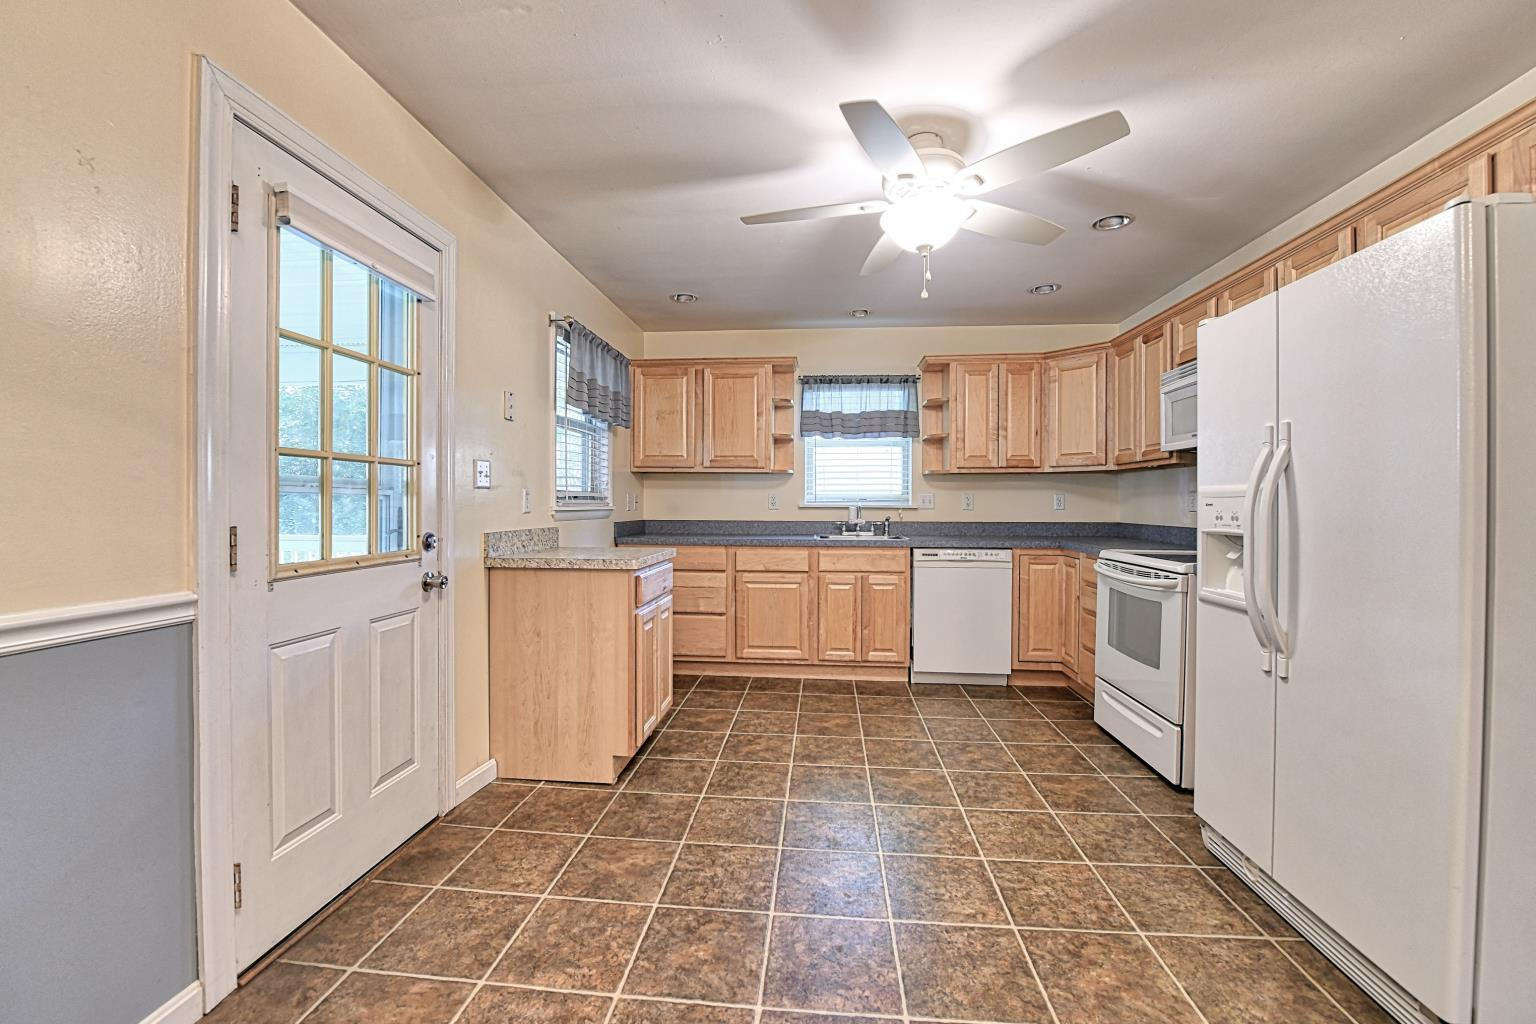 Spacious Kitchen in 29783 Skyview Drive - A Charming Rambler for Sale in Southern MD offering Affordable Taxes, Beach Access and More!  Call Realtor, Marie Lally, at 301-748-8698 for more information!